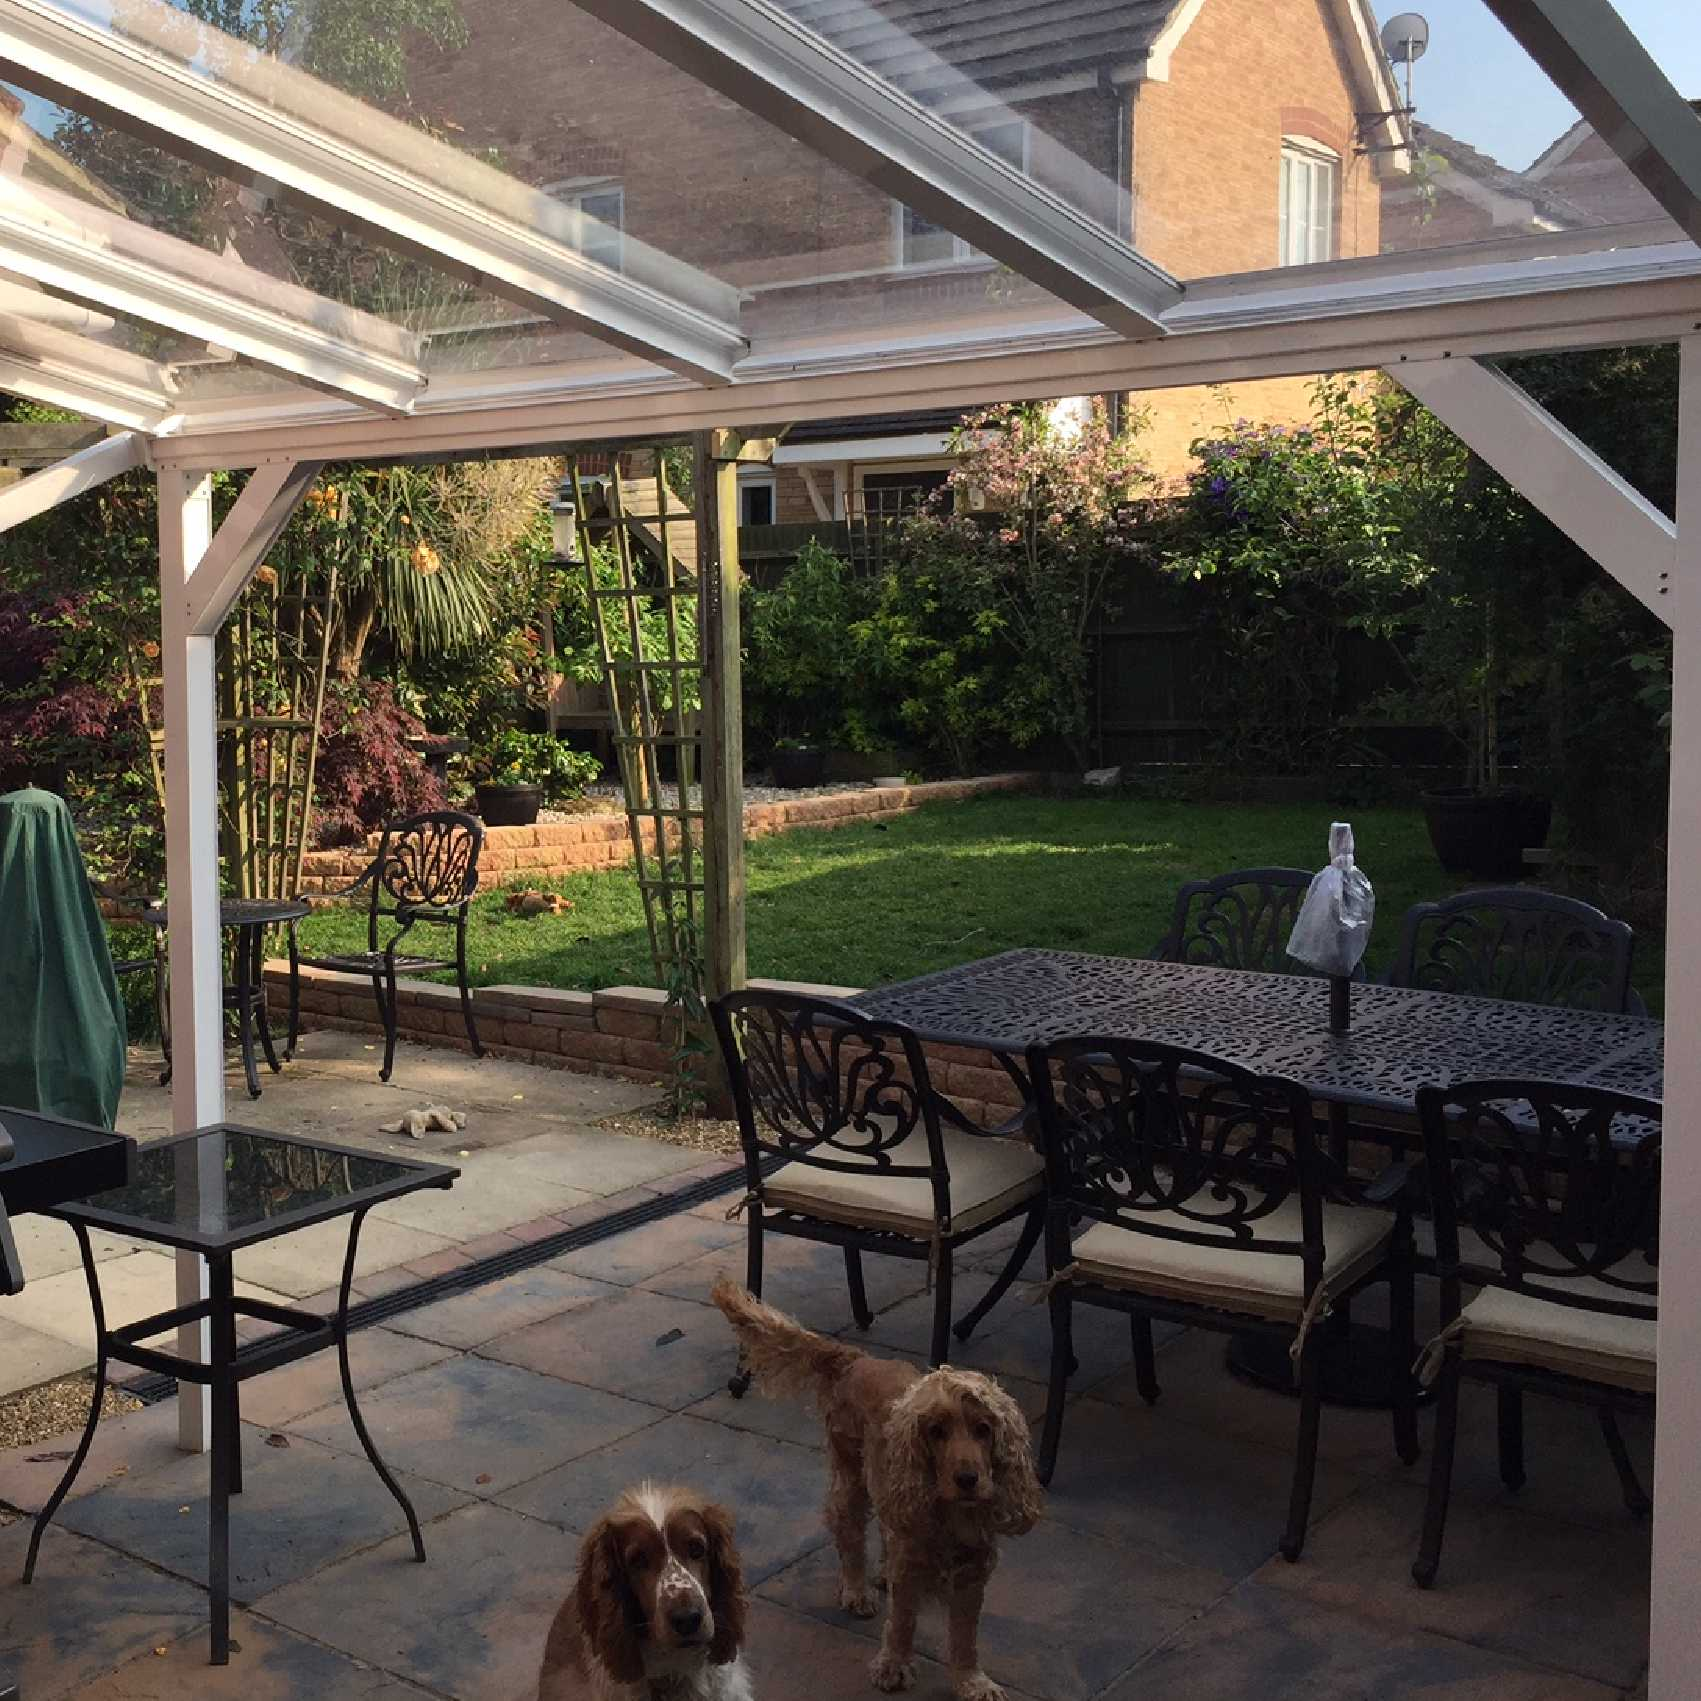 Affordable Omega Smart White Lean-To Canopy with 6mm Glass Clear Plate Polycarbonate Glazing - 10.5m (W) x 3.5m (P), (5) Supporting Posts